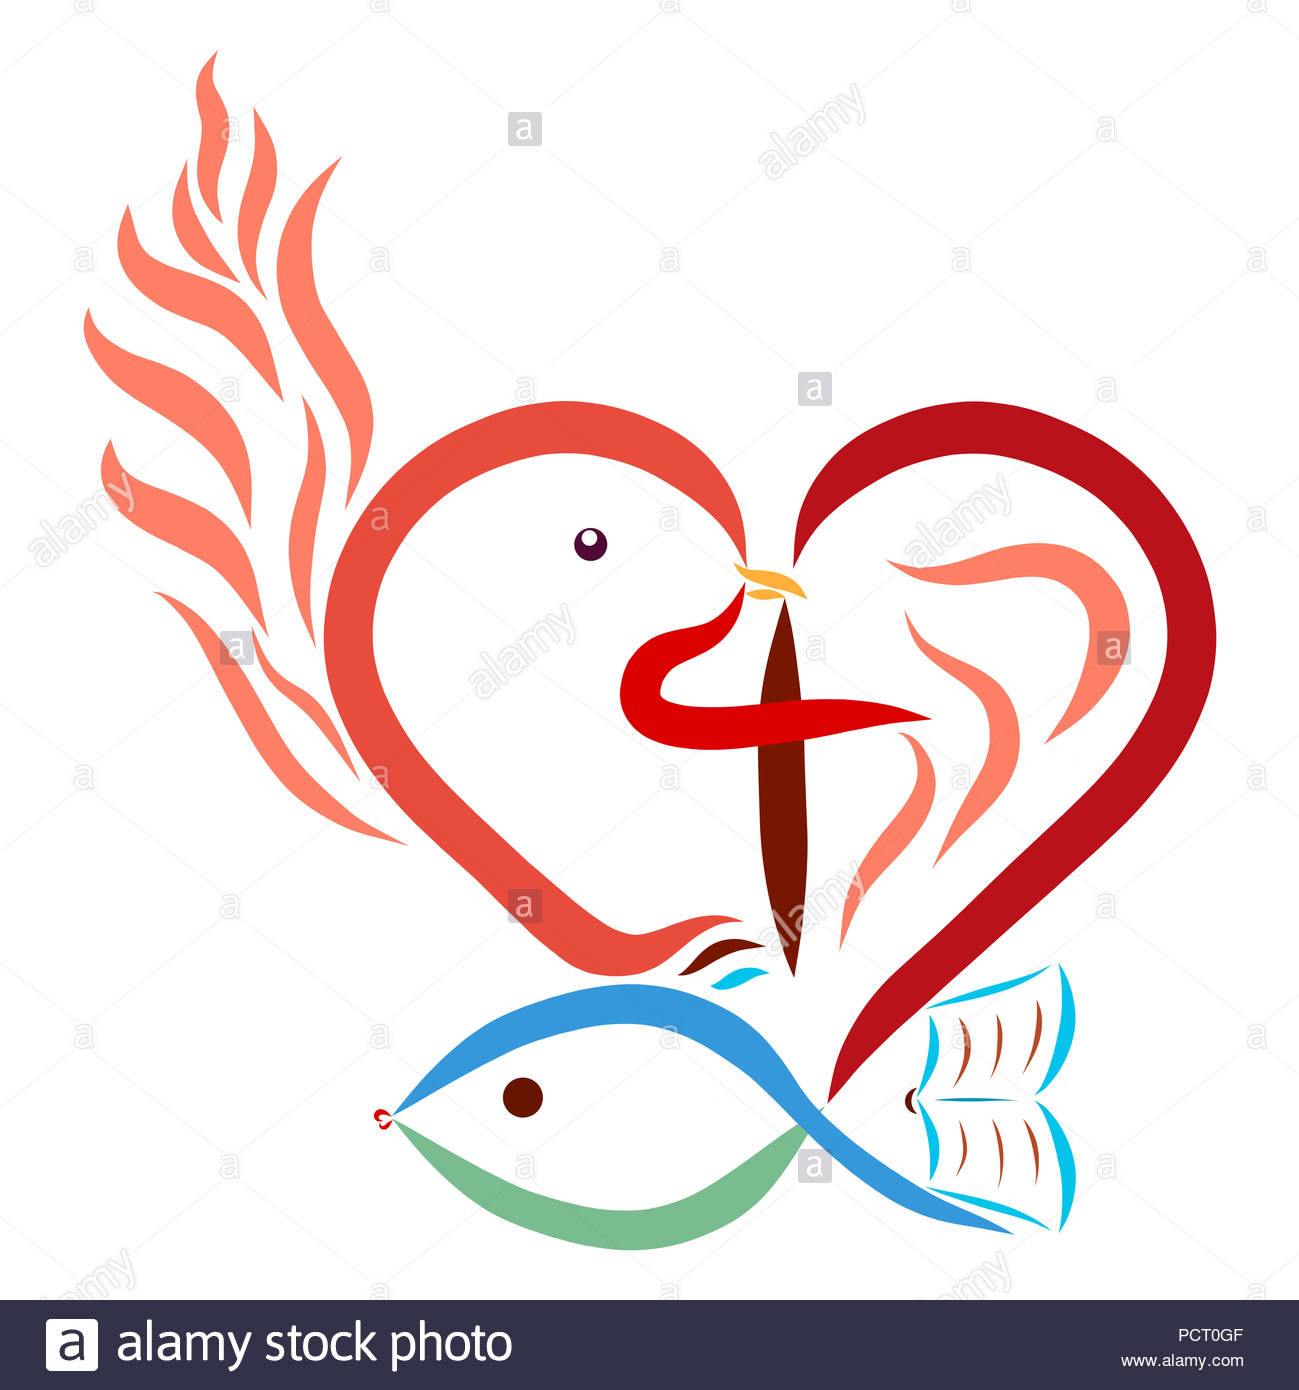 Christian Symbolism Heart Cross Dove Fish Flame Bible Stock